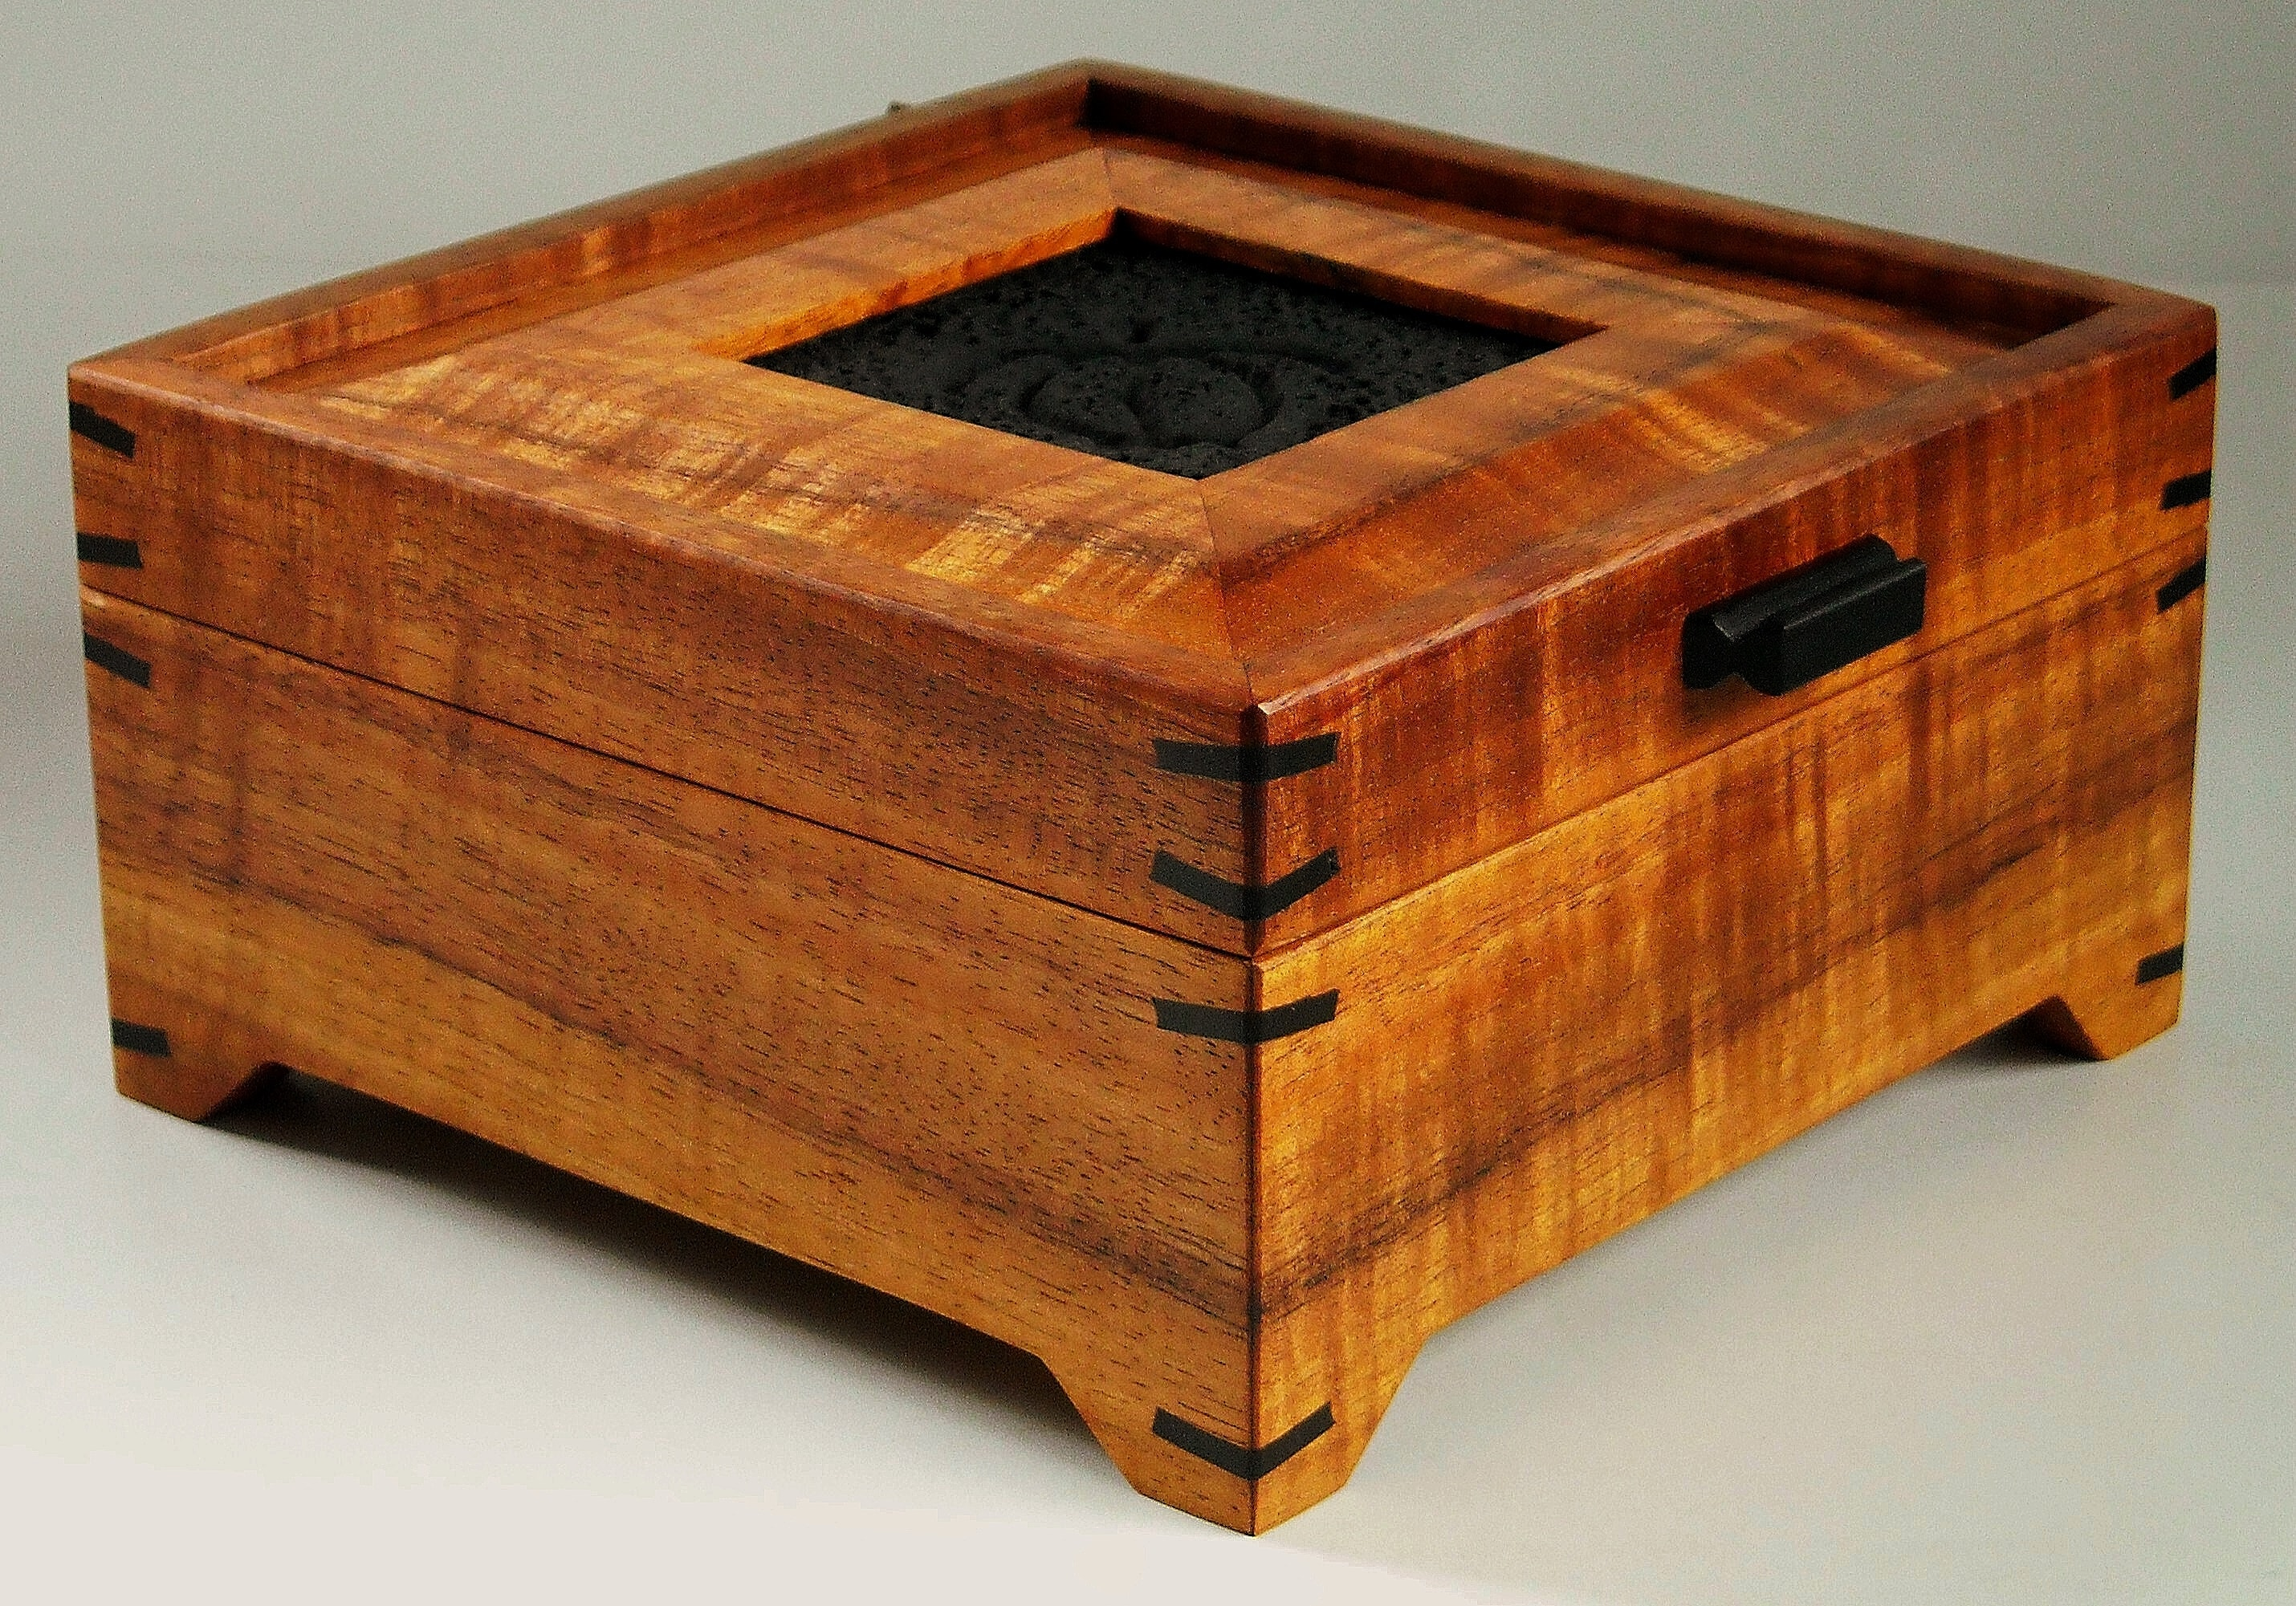 Footed Koa Wood Jewelry Box